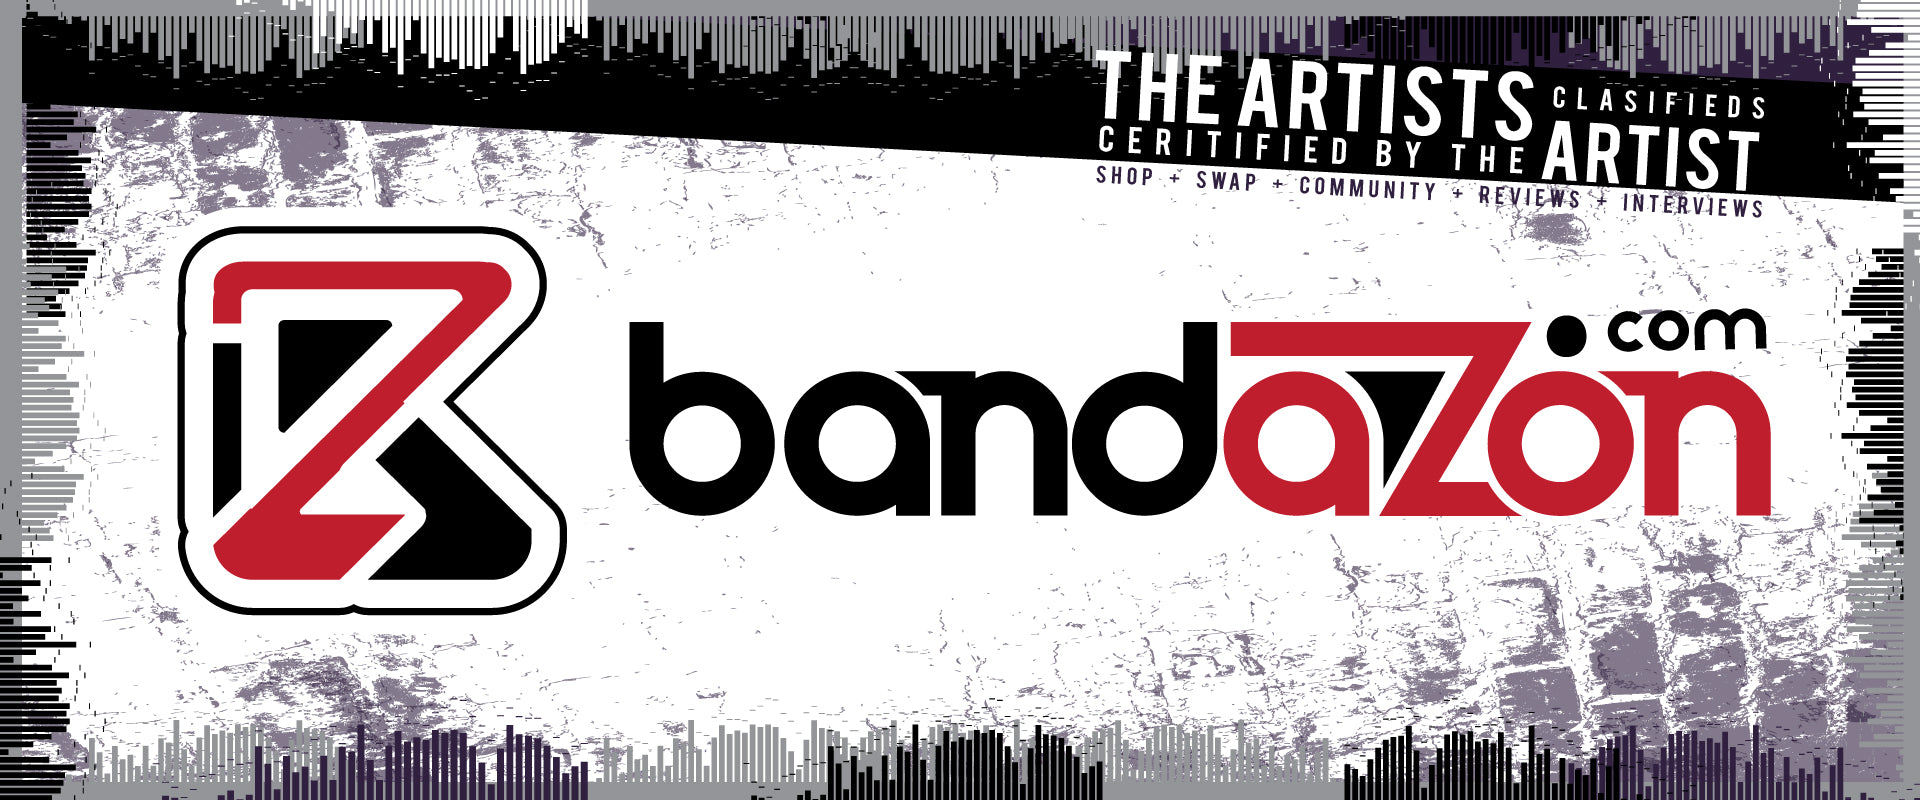 www.Bandazon.com #Bandazon #Bands #Merch #ecommerce #Artist #Solutions